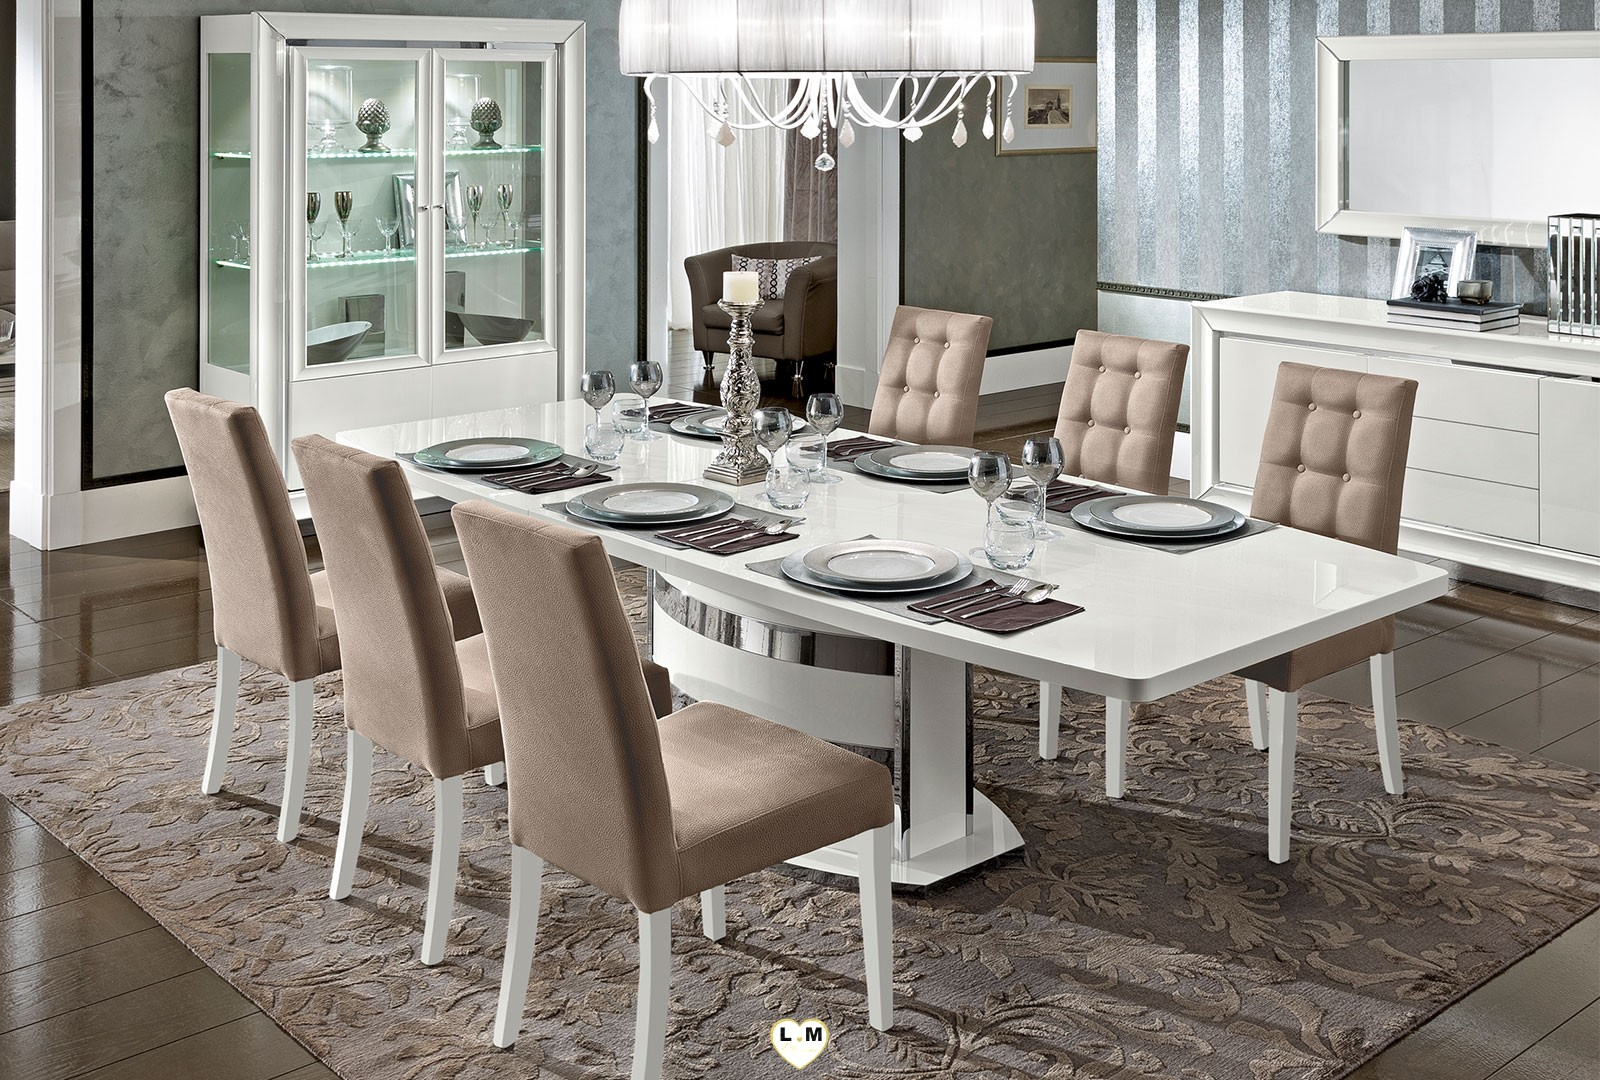 maximus laque blanc brillant sejour salle a manger contemporain la grande table repas. Black Bedroom Furniture Sets. Home Design Ideas